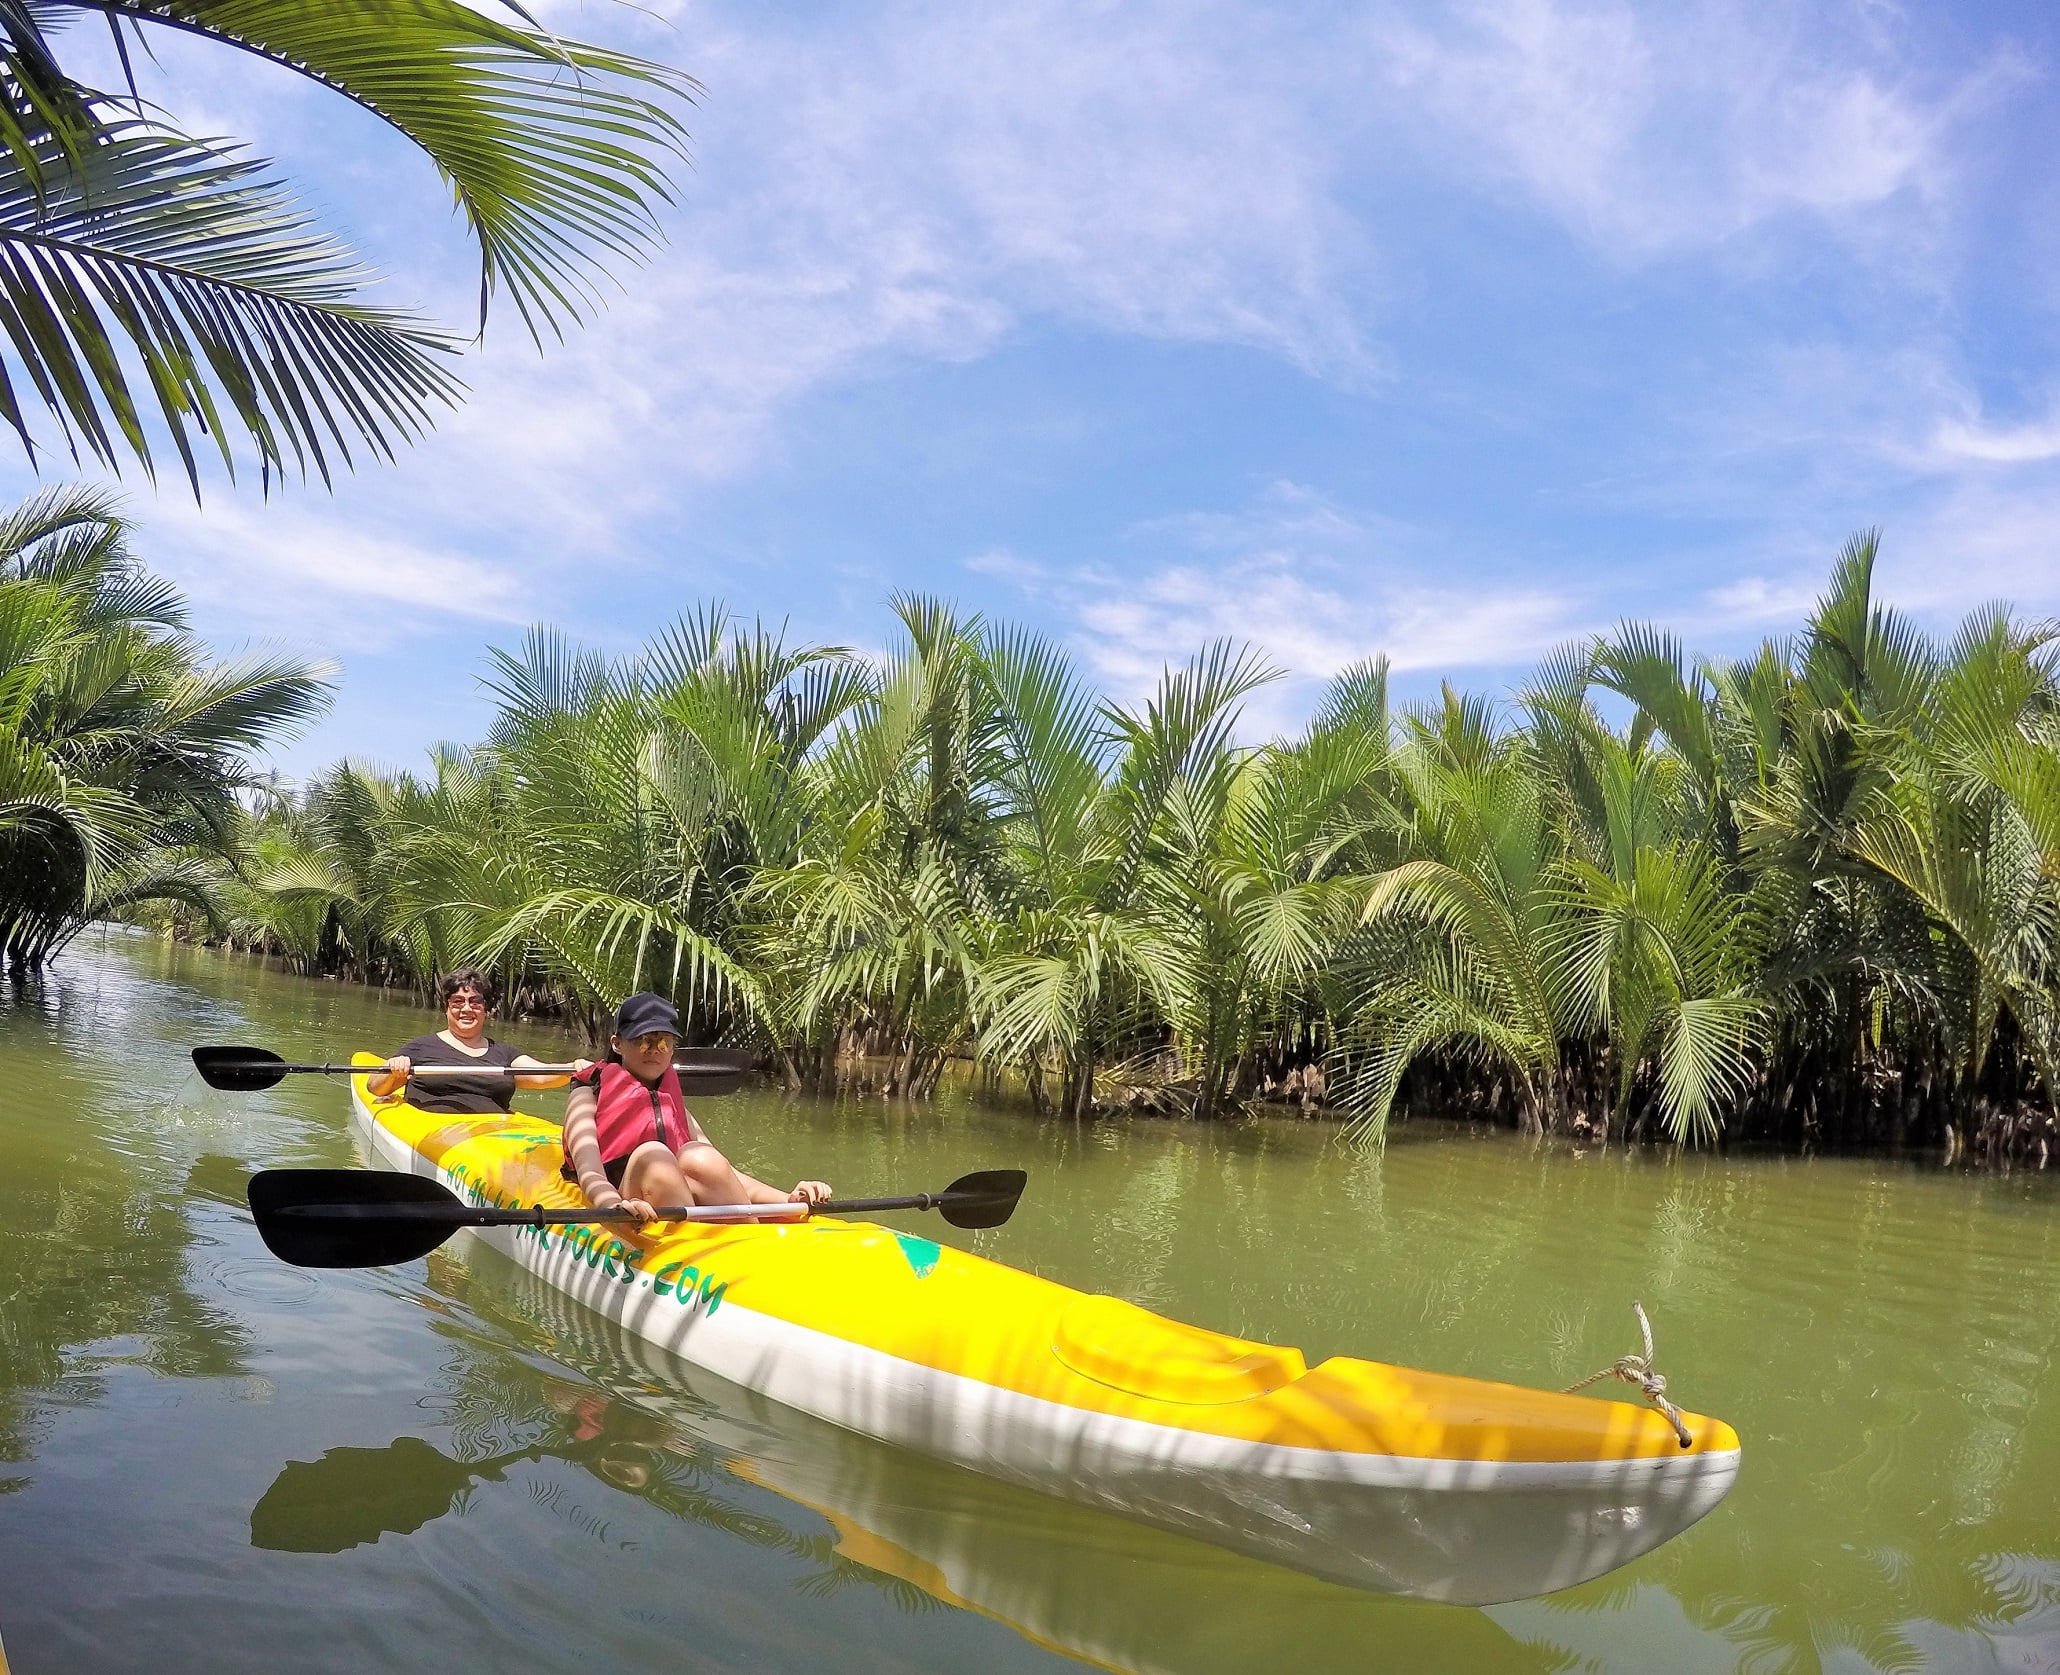 Kayak Tourists Relaxing In Mangrove Forest Hoi An